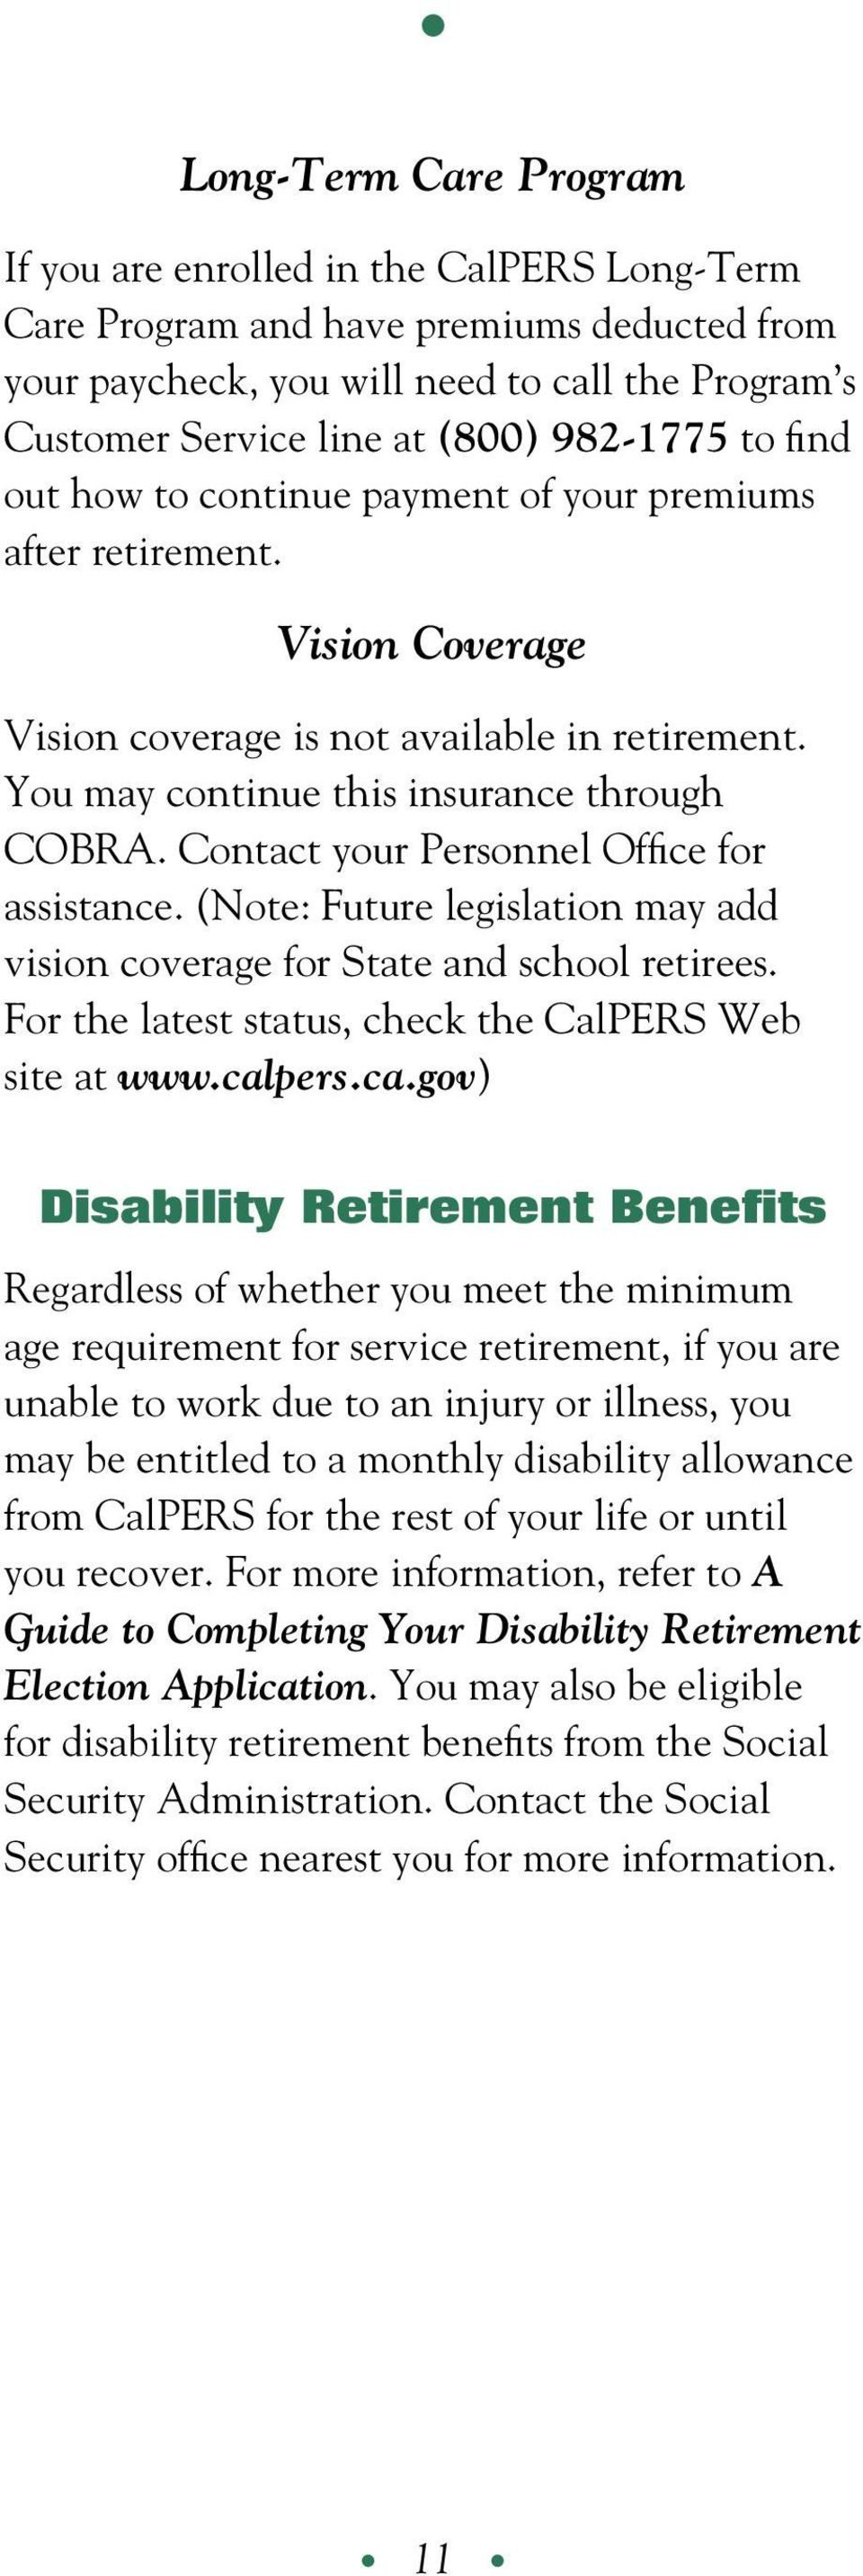 Contact your Personnel Office for assistance. (Note: Future legislation may add vision coverage for State and school retirees. For the latest status, check the CalPERS Web site at www.cal